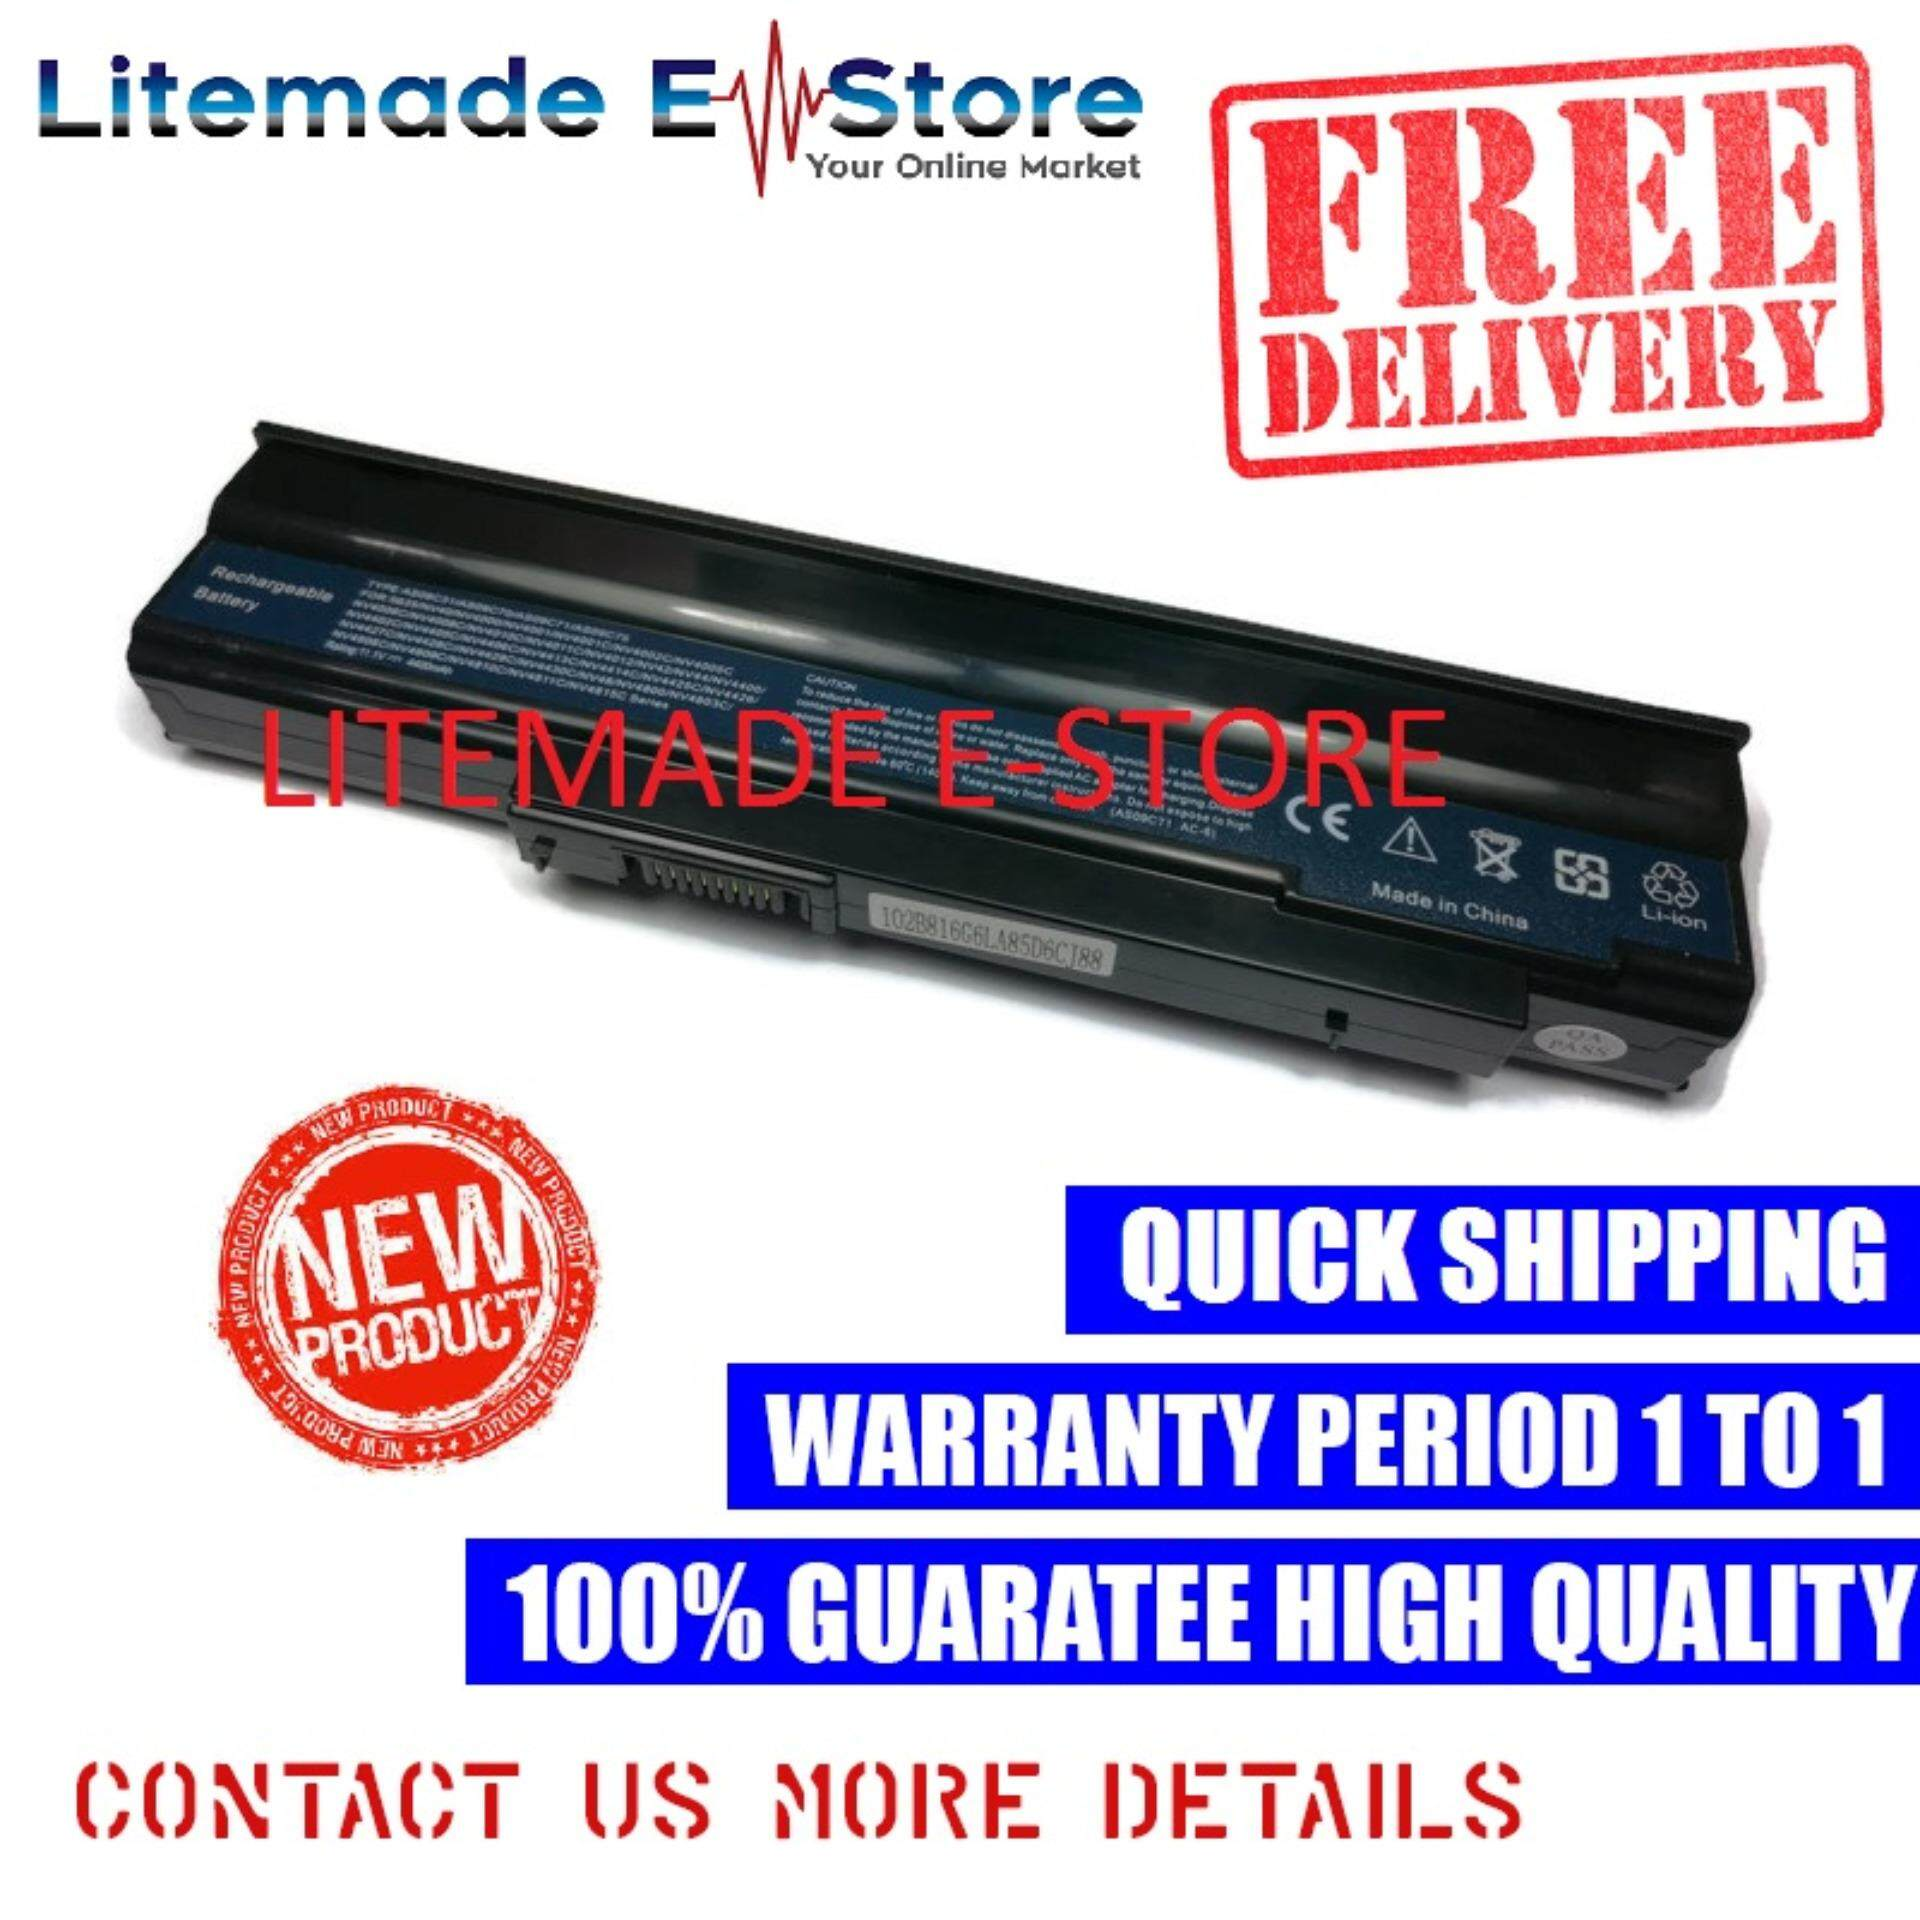 Gateway LX.EE50X.050 Laptop Battery